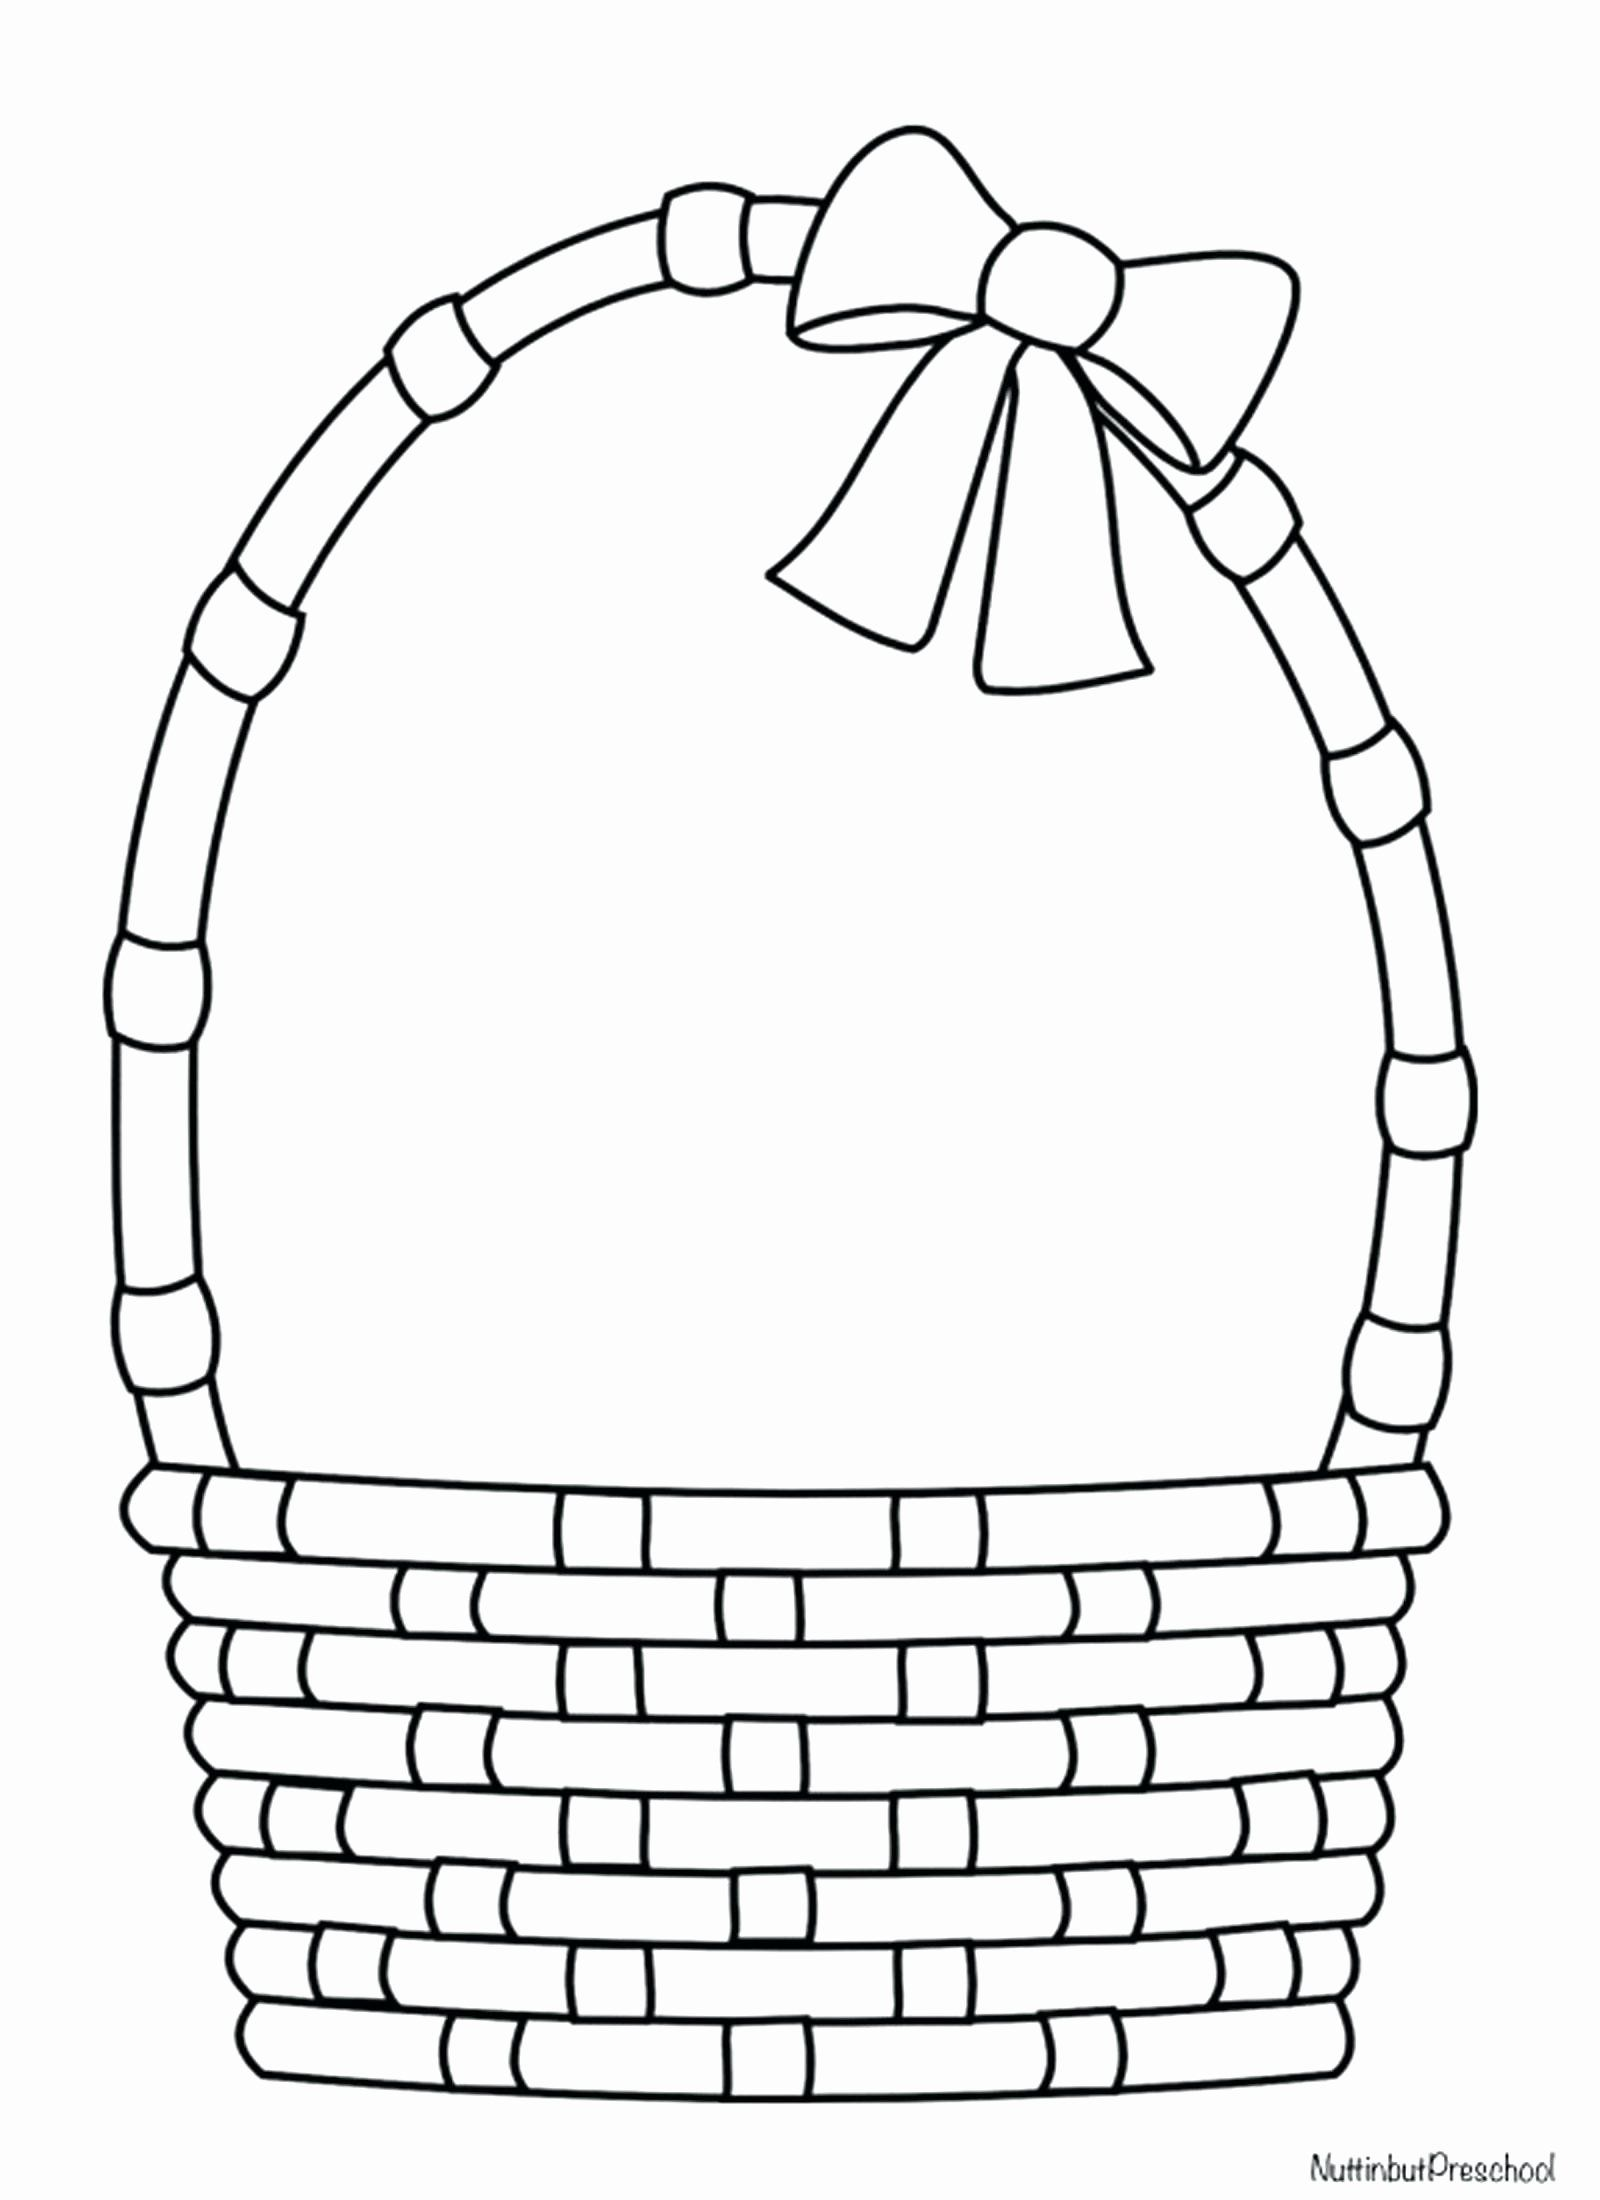 Empty Easter Basket Coloring Page Luxury Free Printable Easter And